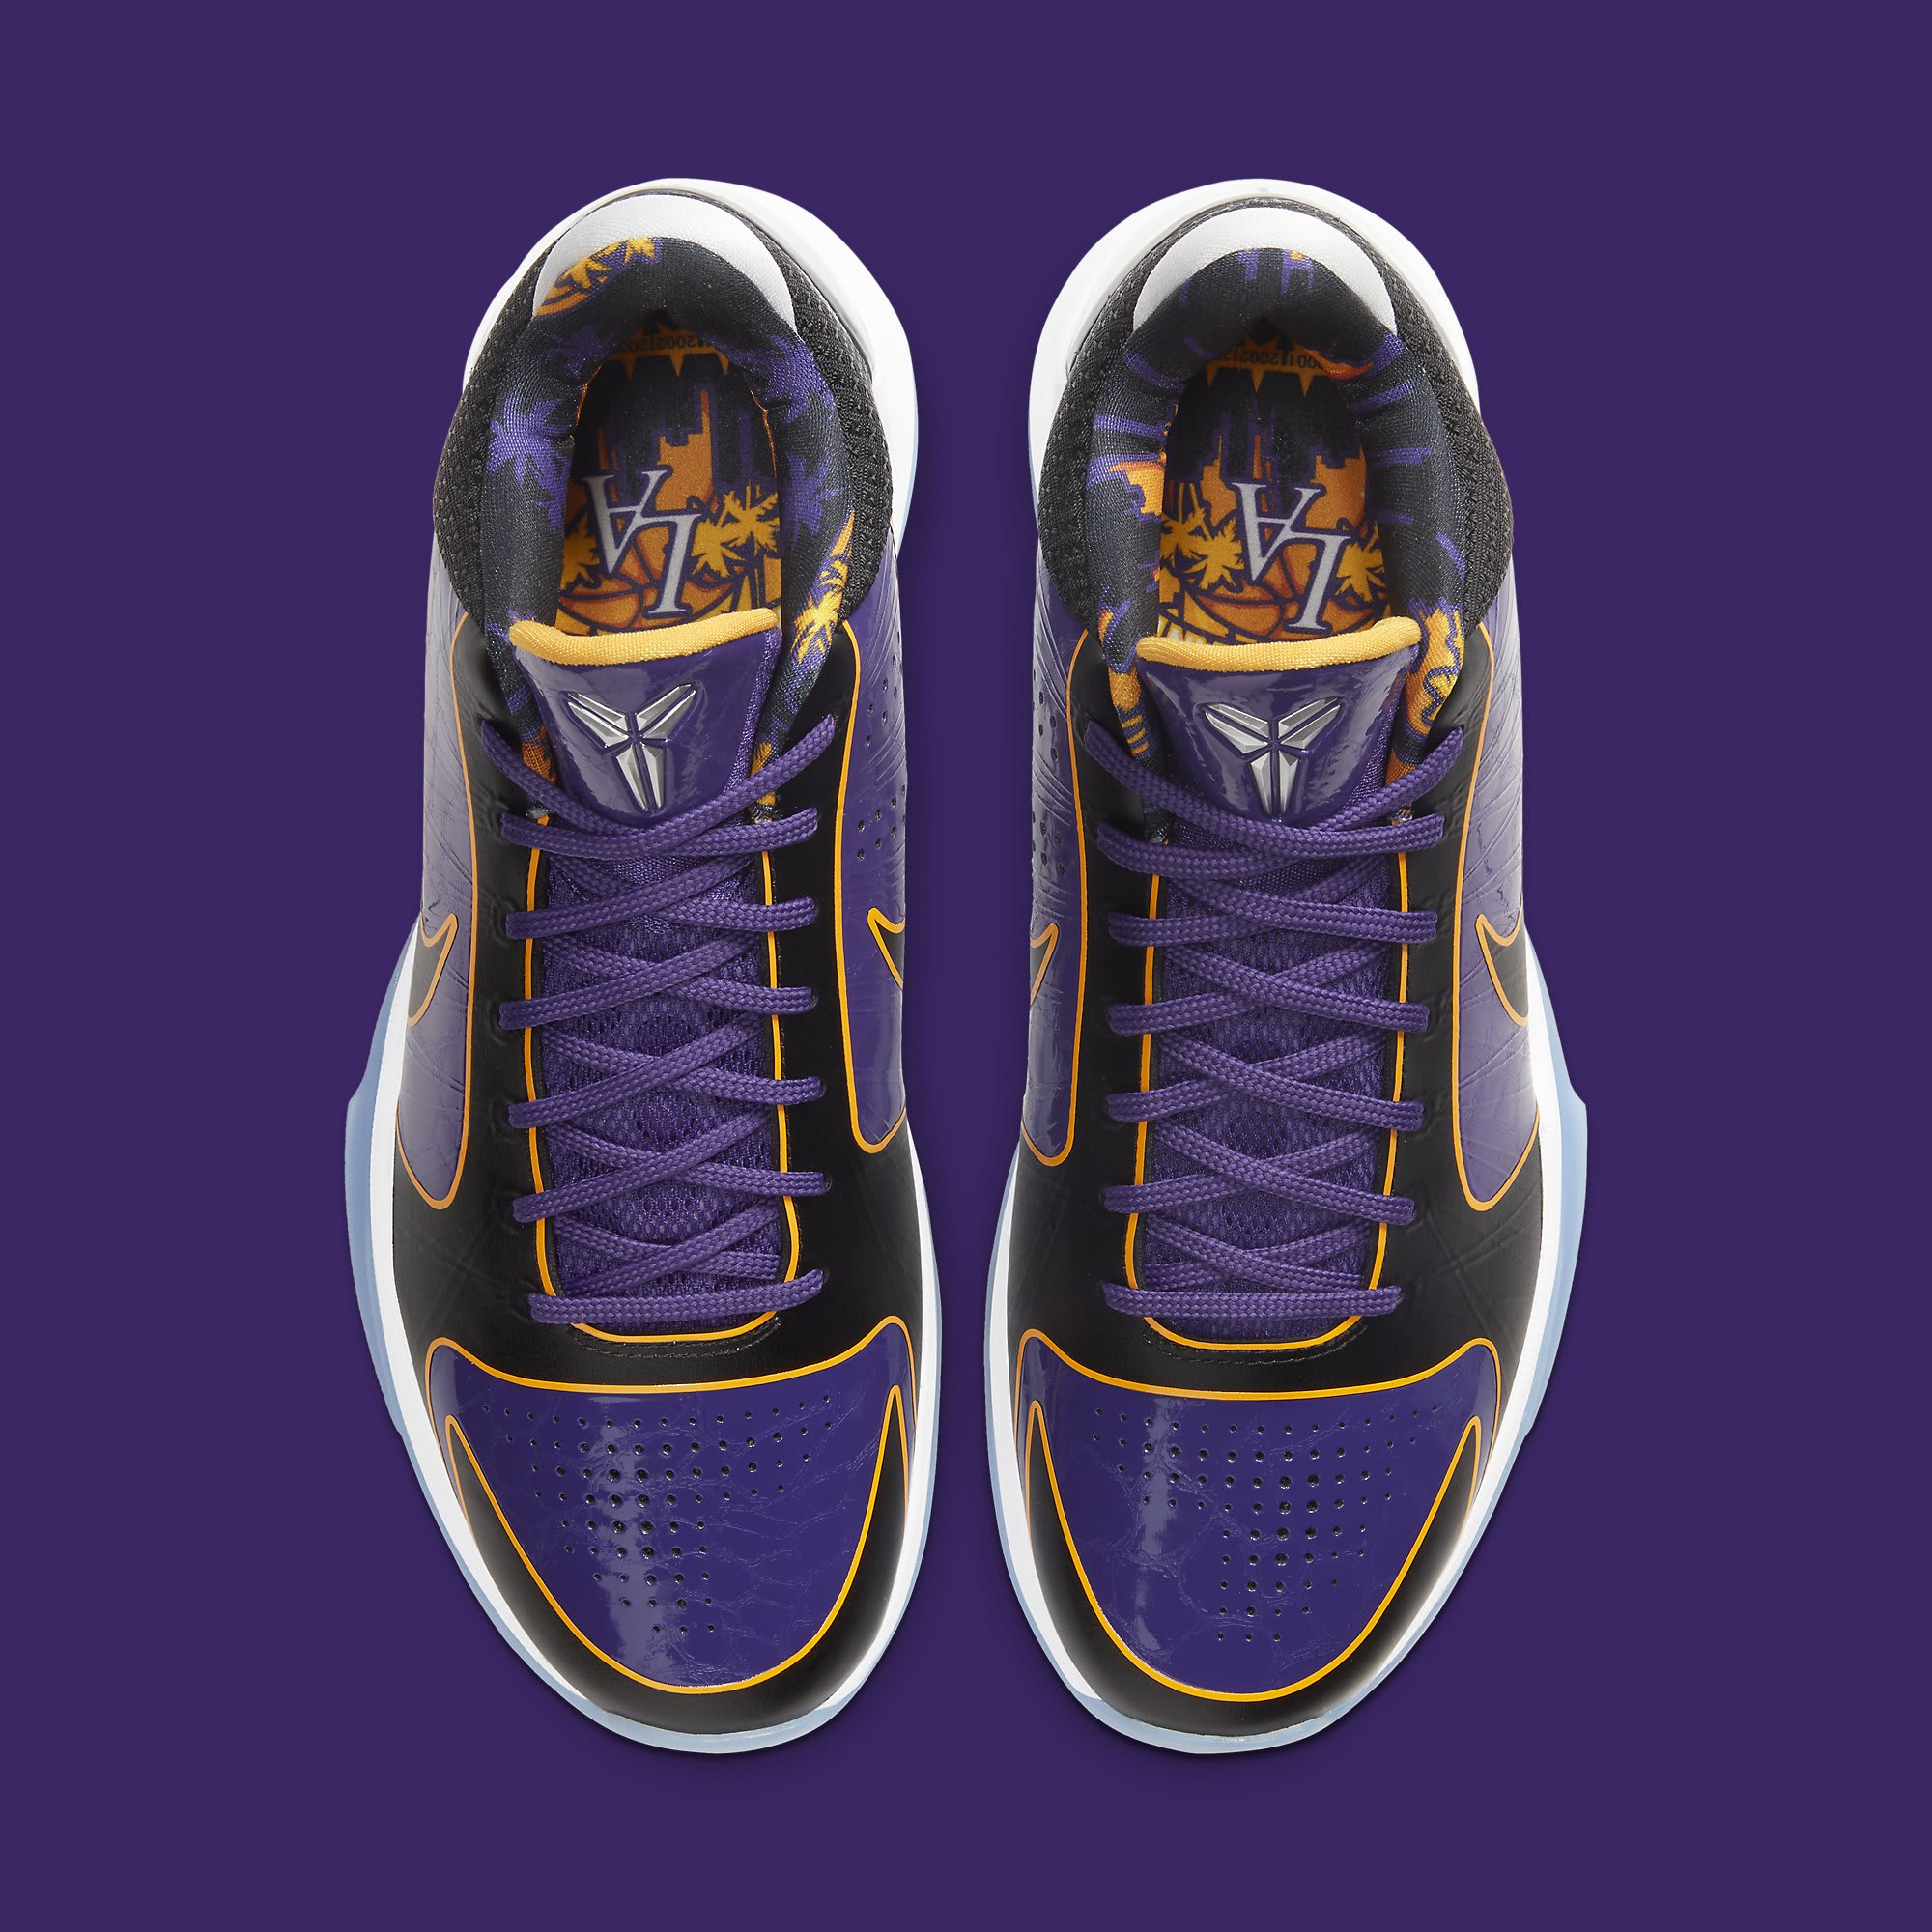 Nike Kobe 5 Protro Lakers Release Date CD4991-500 Top